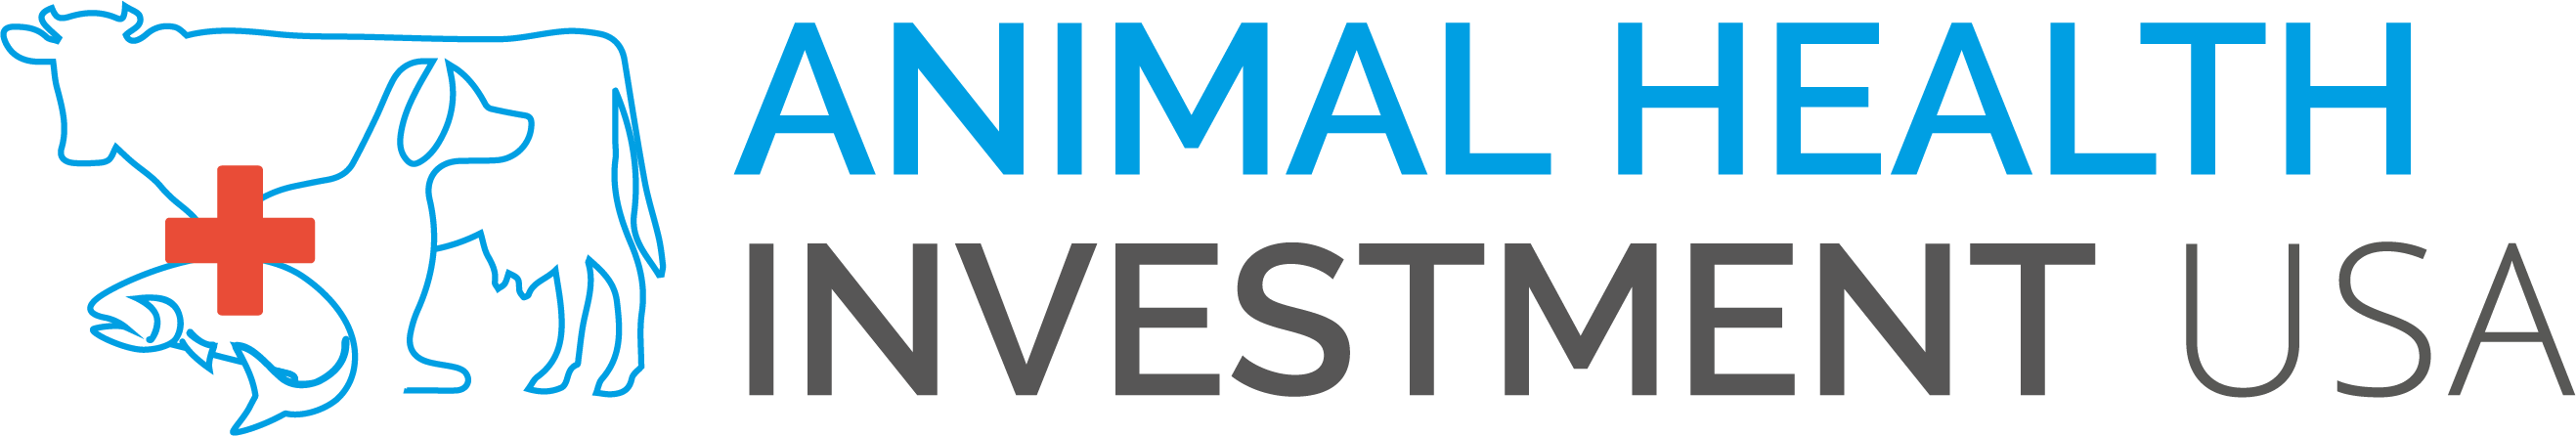 2020 Animal Health Investment USA